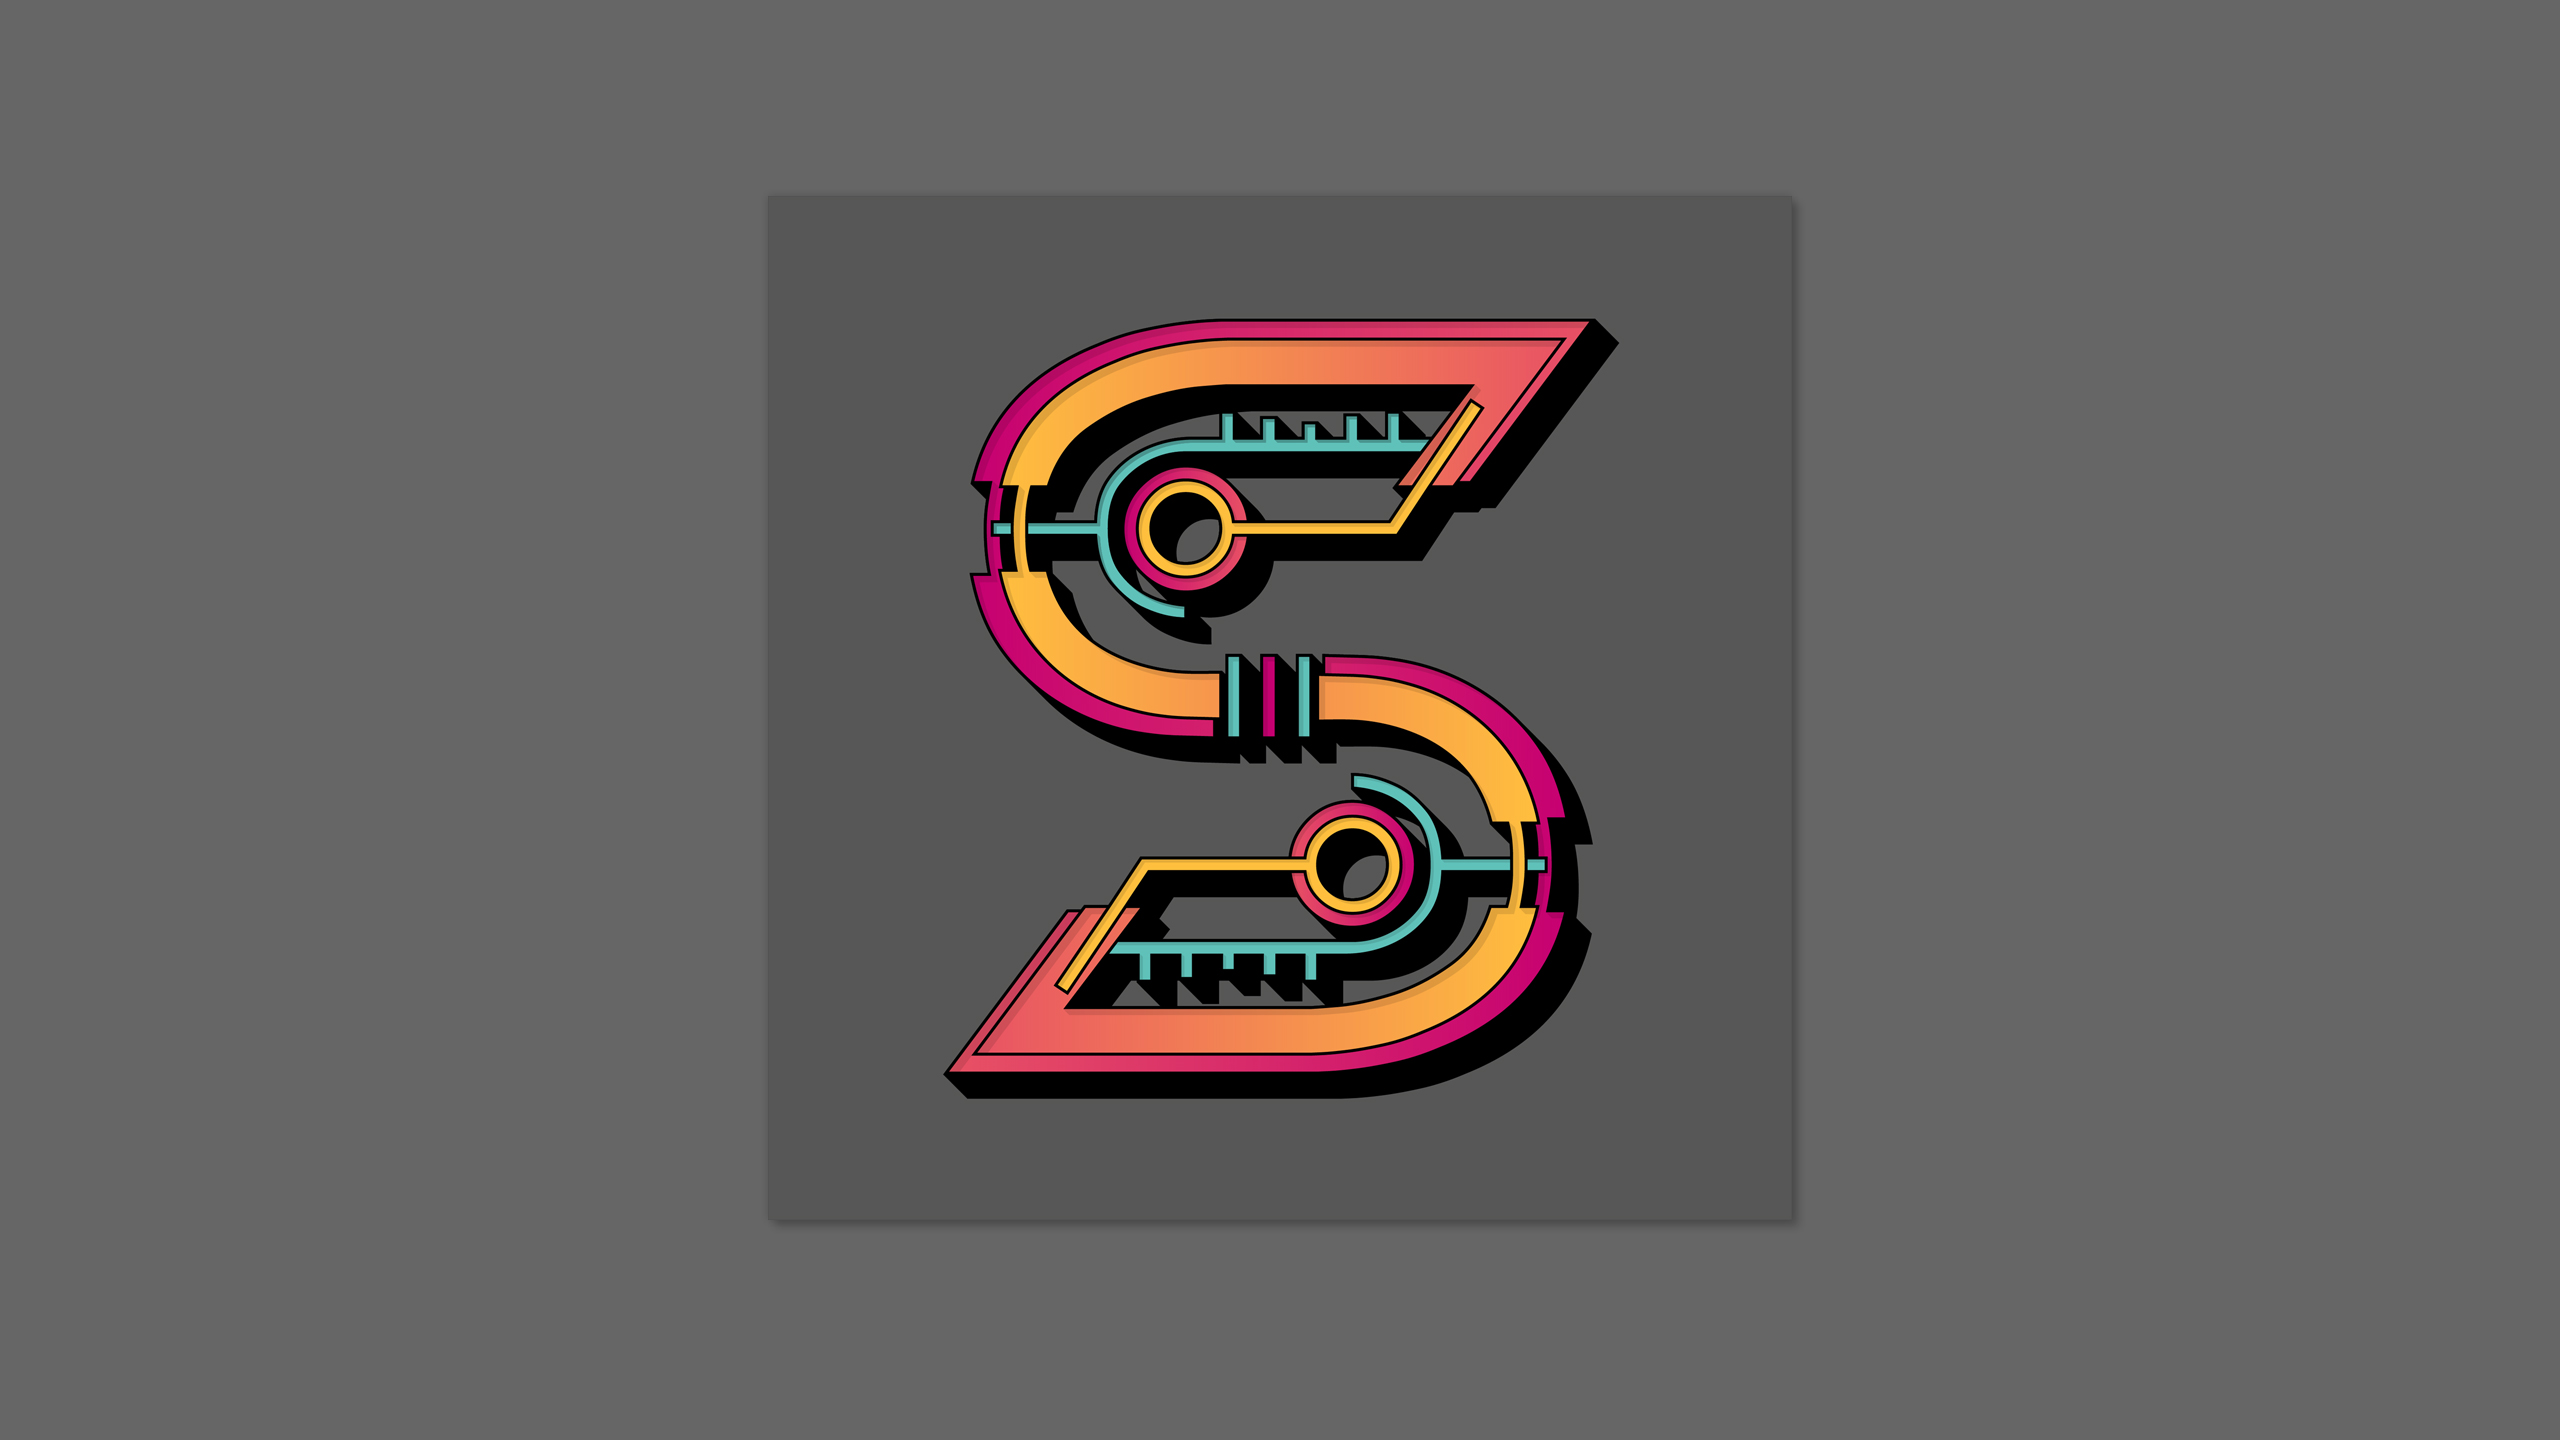 Syndicate logo designed by Dephined